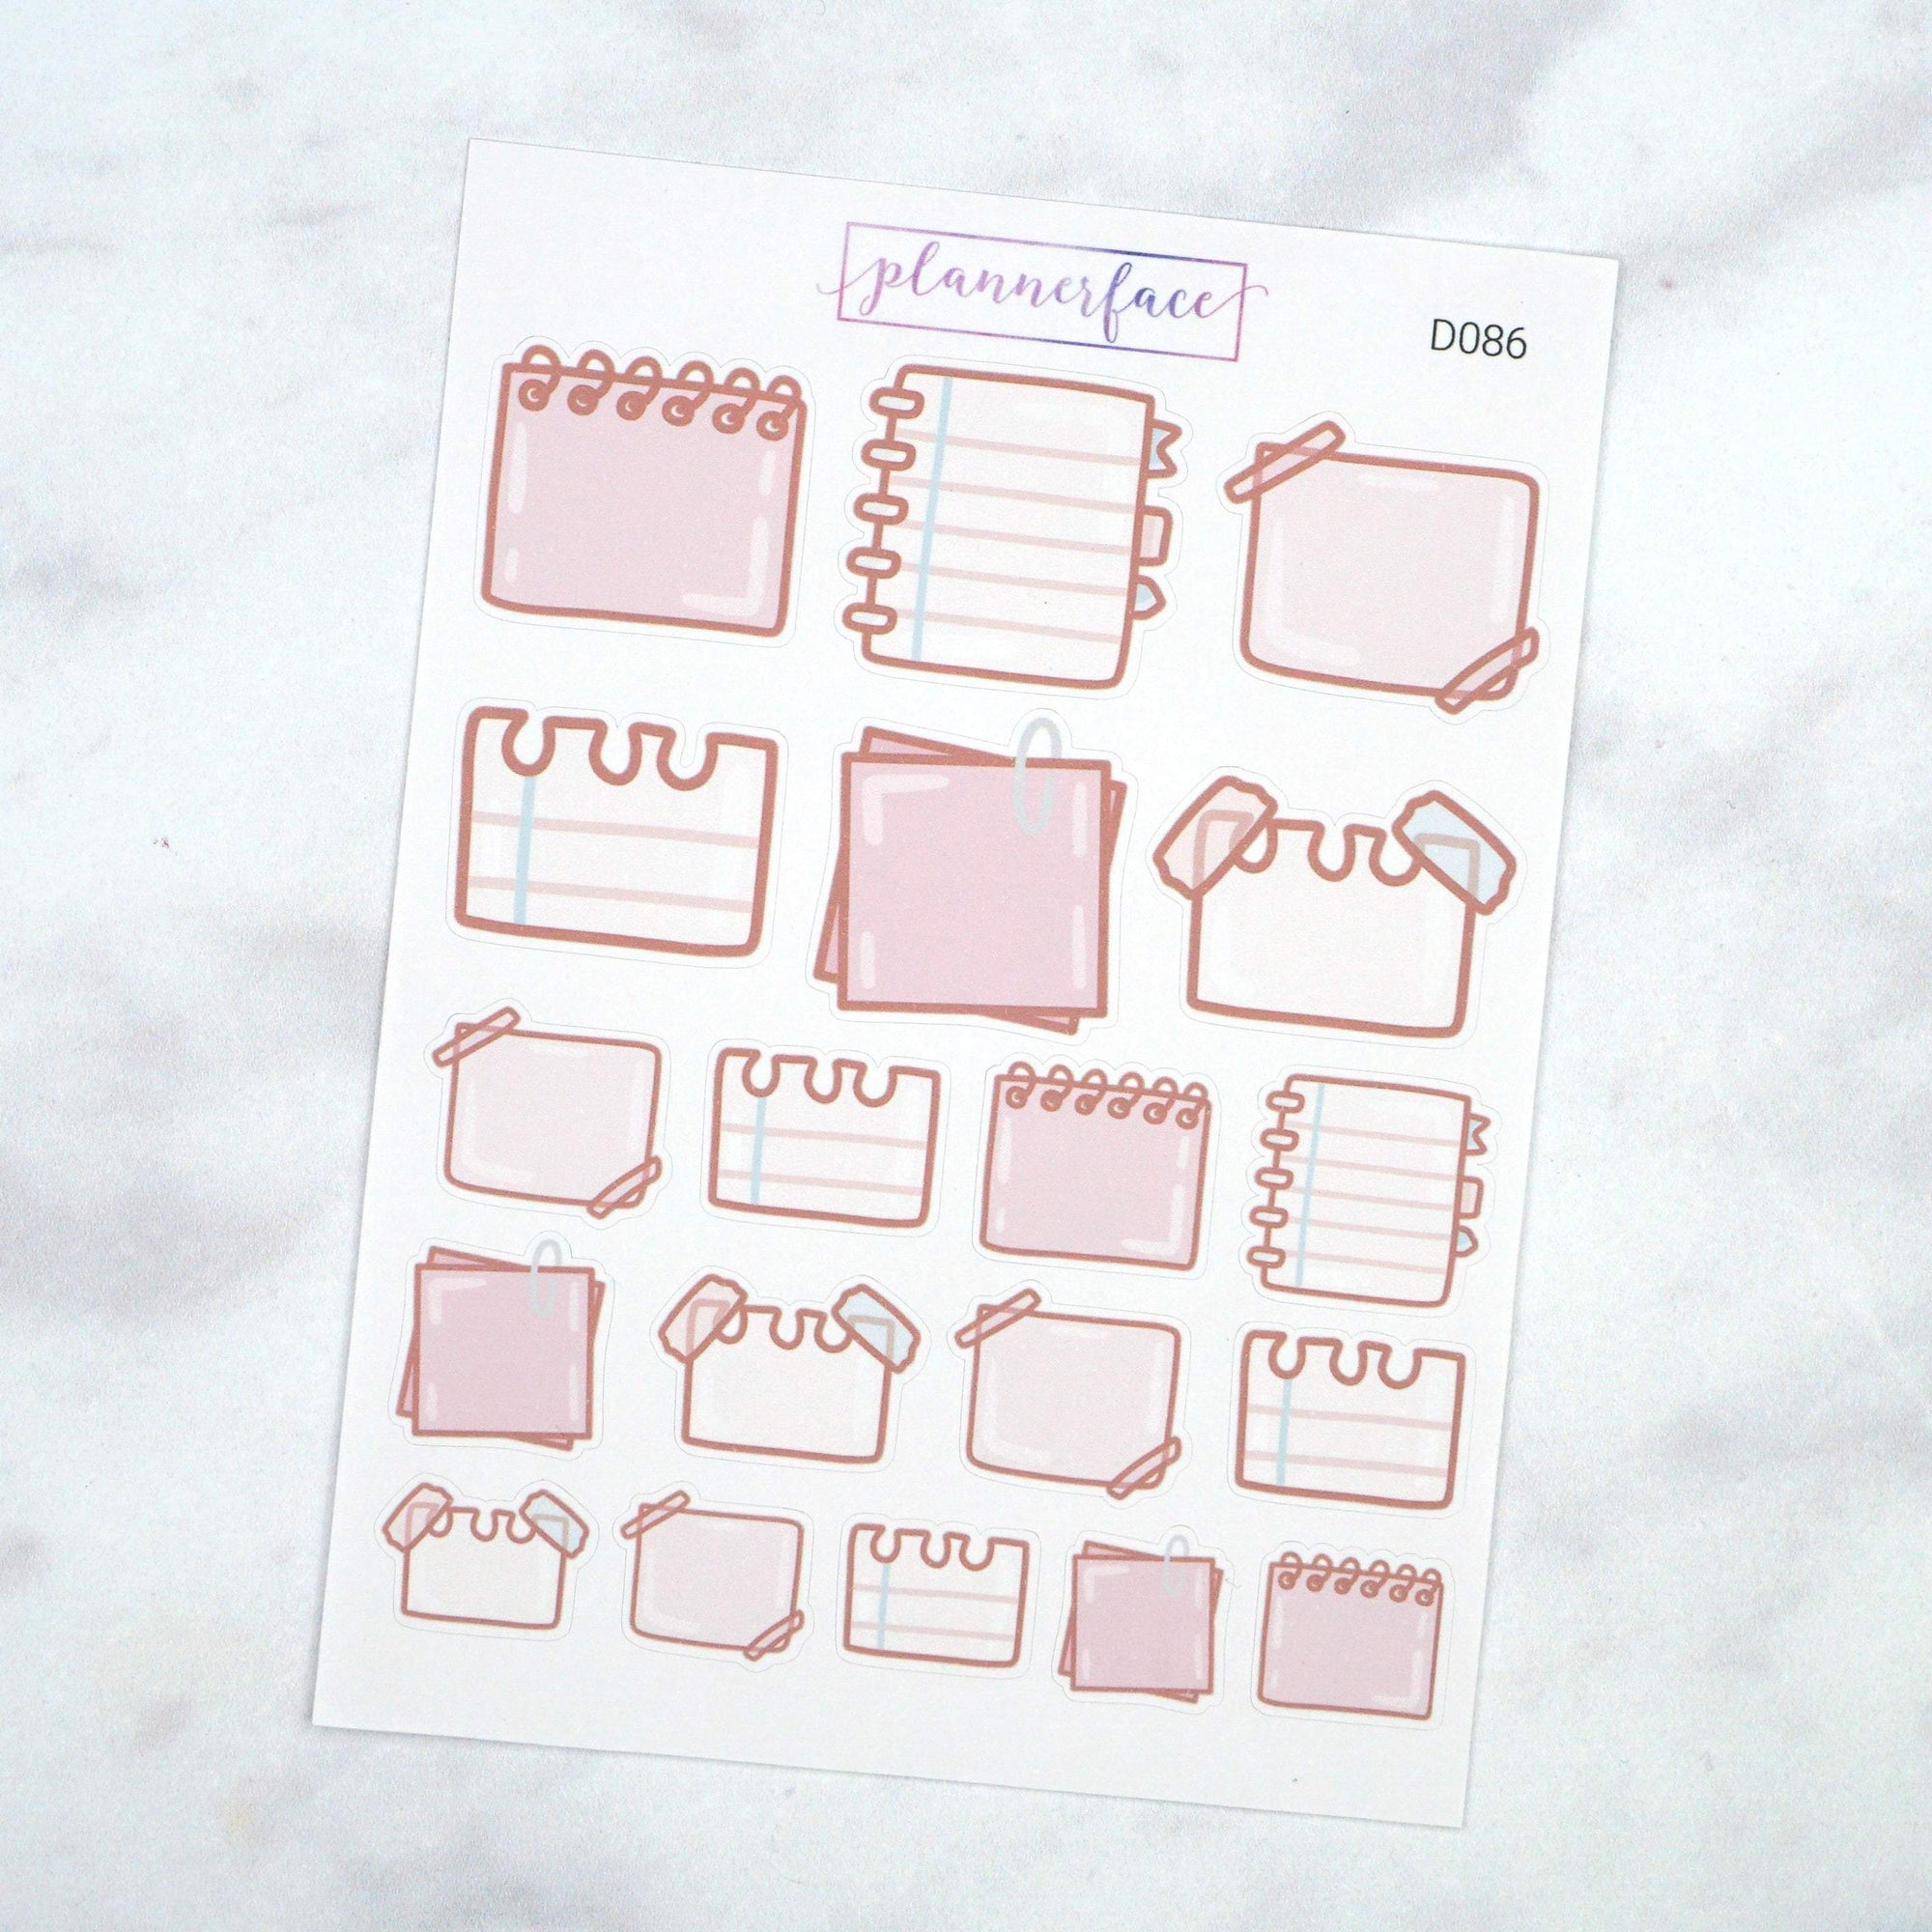 Plannerface Note Paper Doodles Planner Stickers